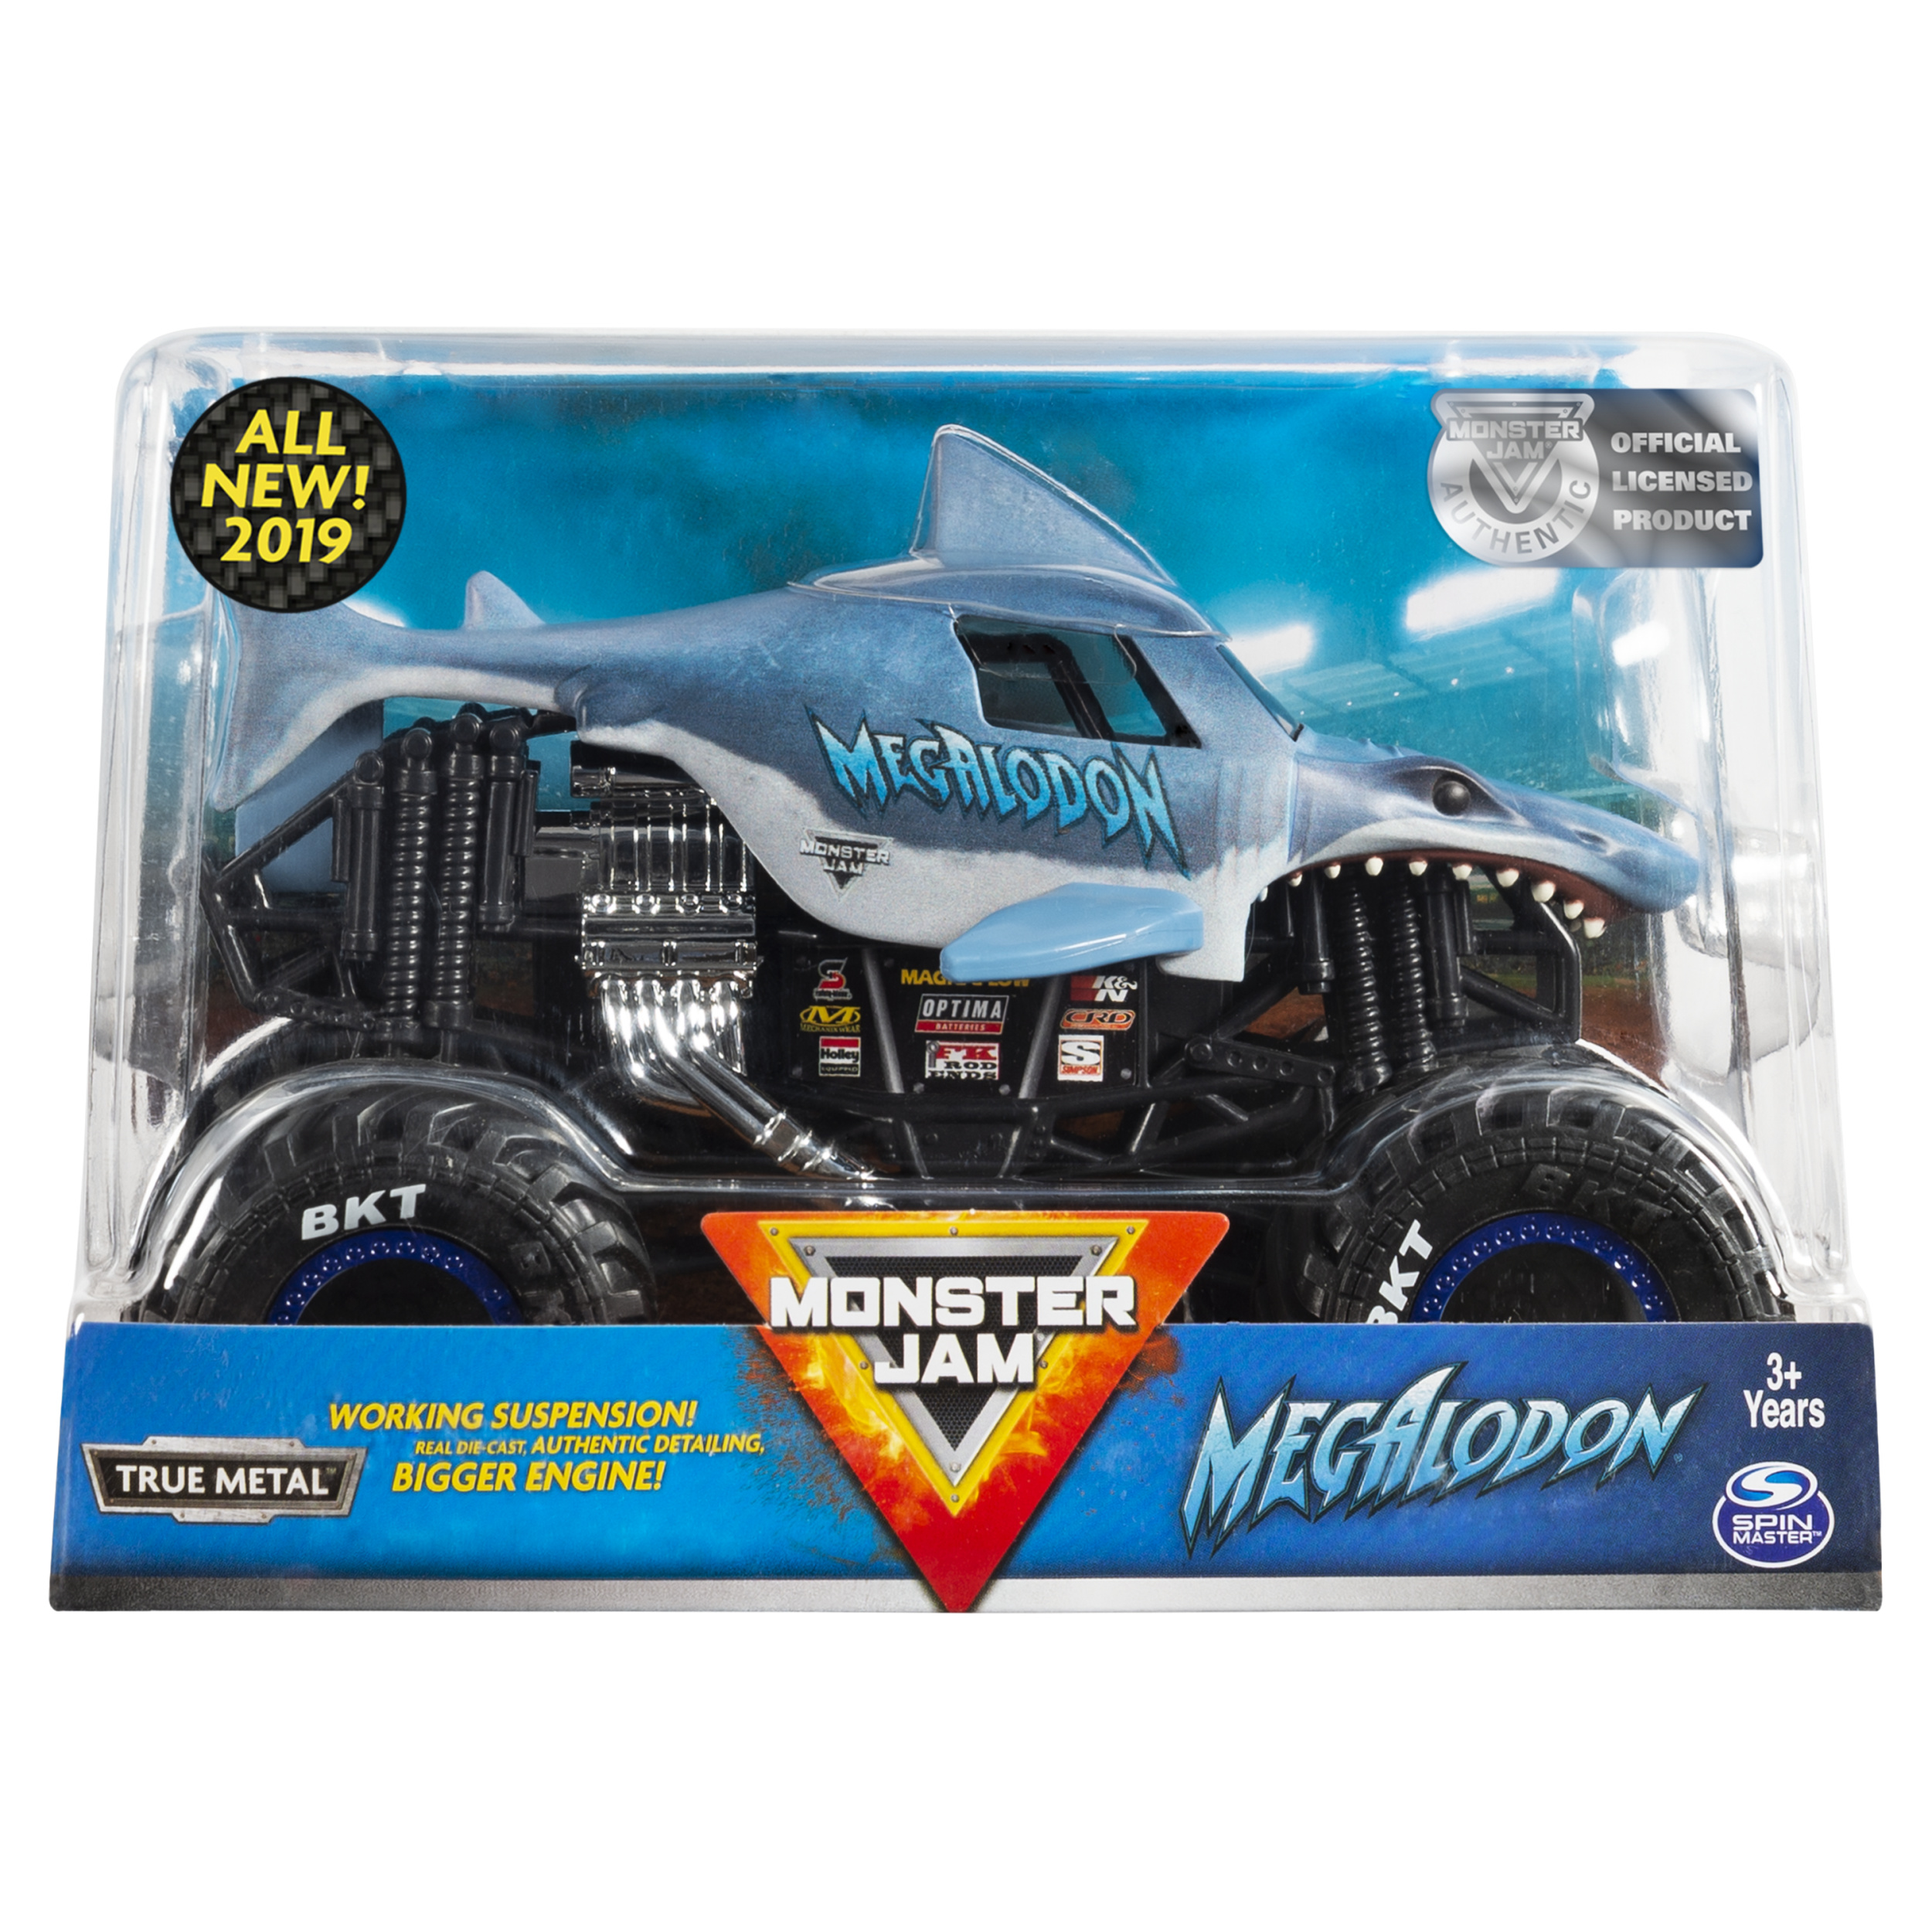 Monster Jam, Official Megalodon Monster Truck, Die-Cast Vehicle, 1:24 Scale